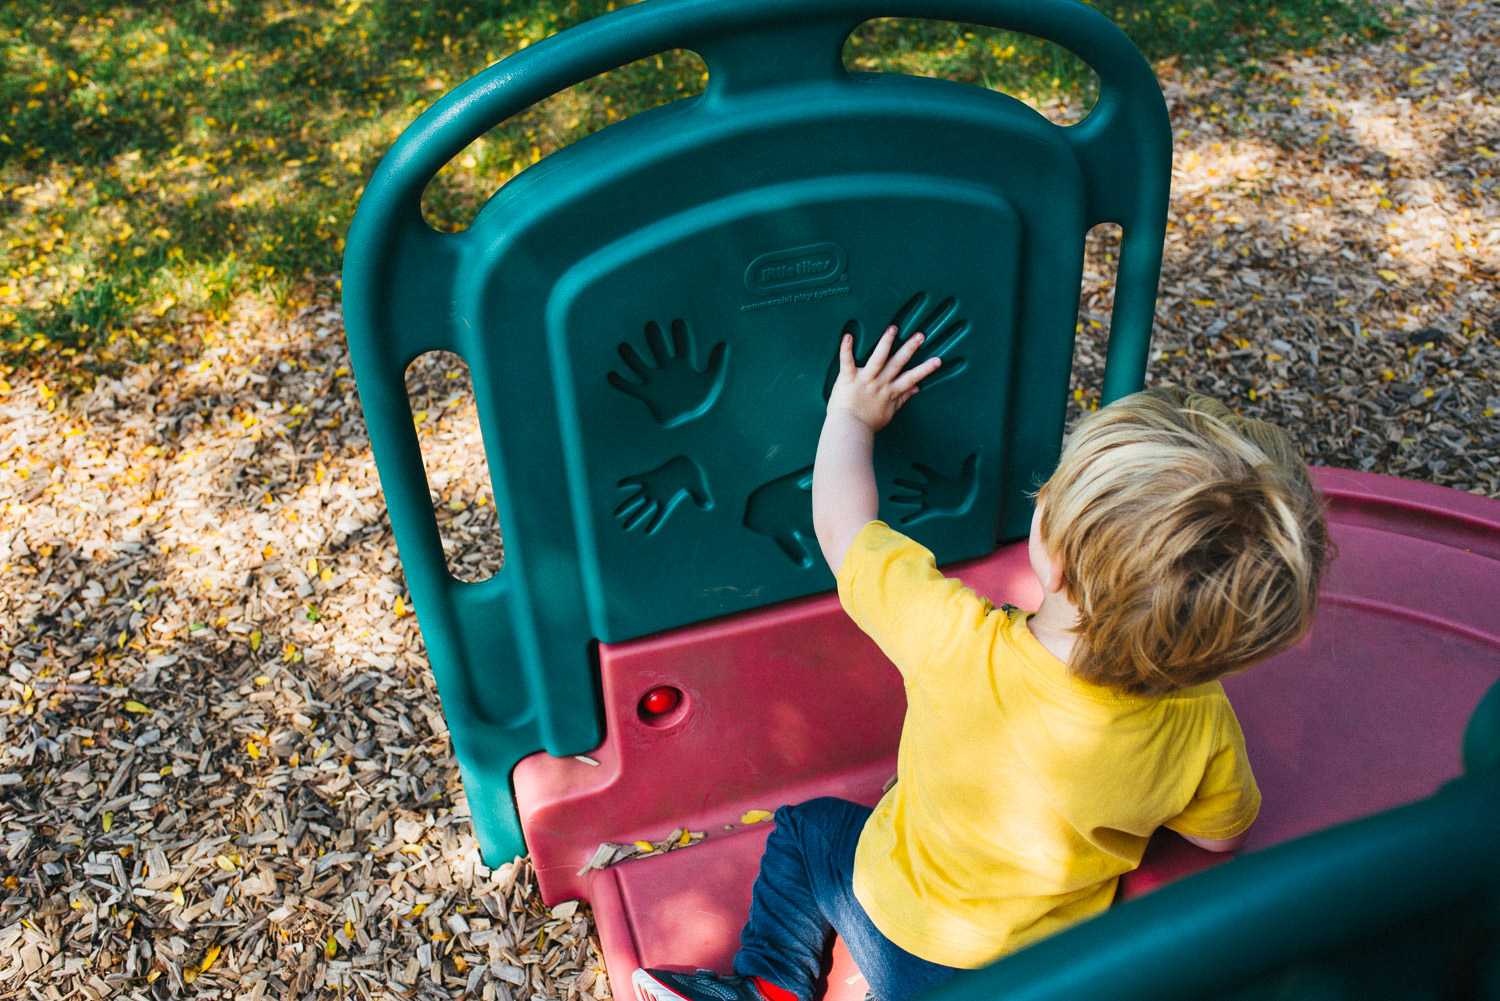 A little boy fits his hand into the imprint of a hand on some playground equipment.